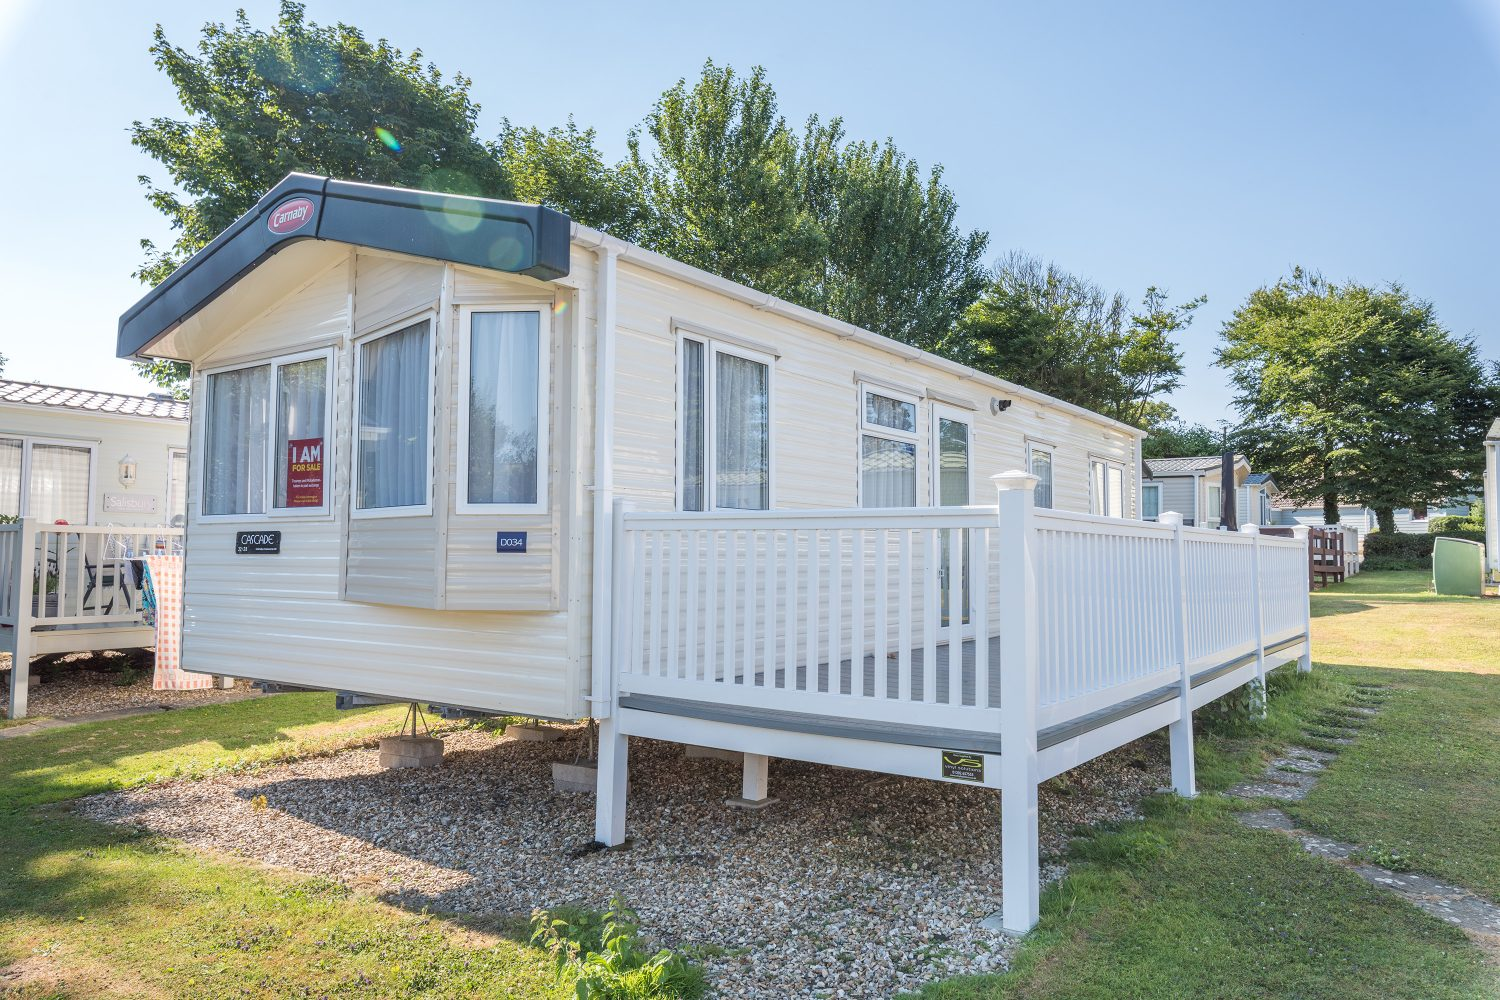 pre owned caravans for sale in dorset